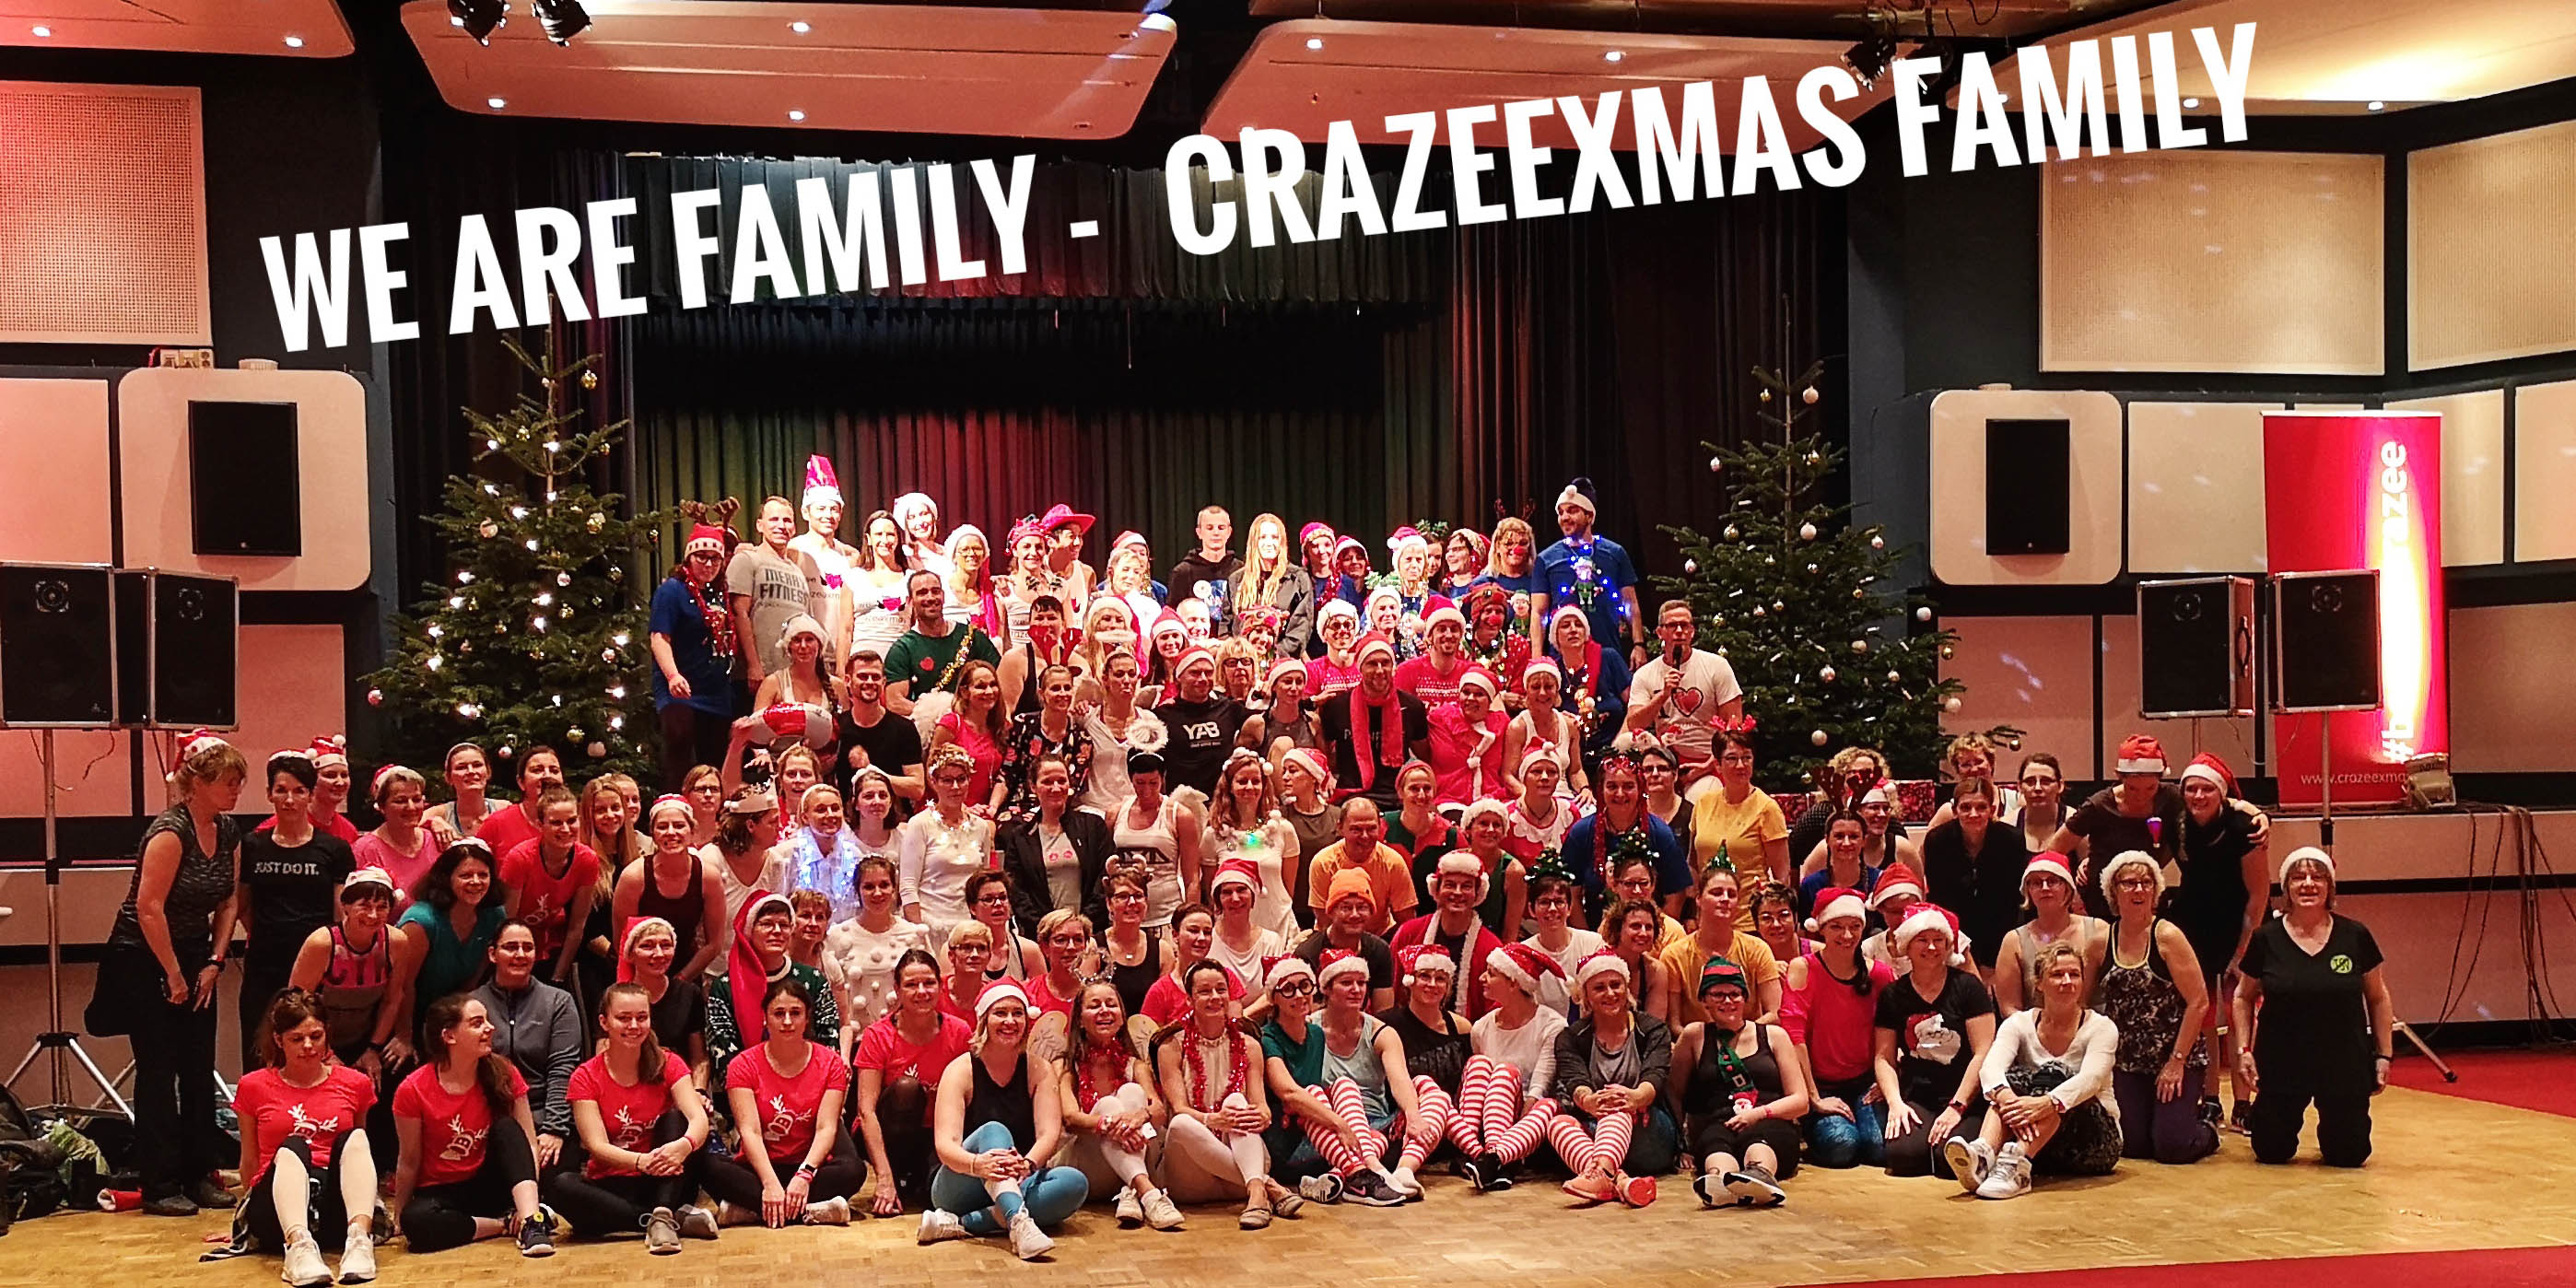 crazeexmas family